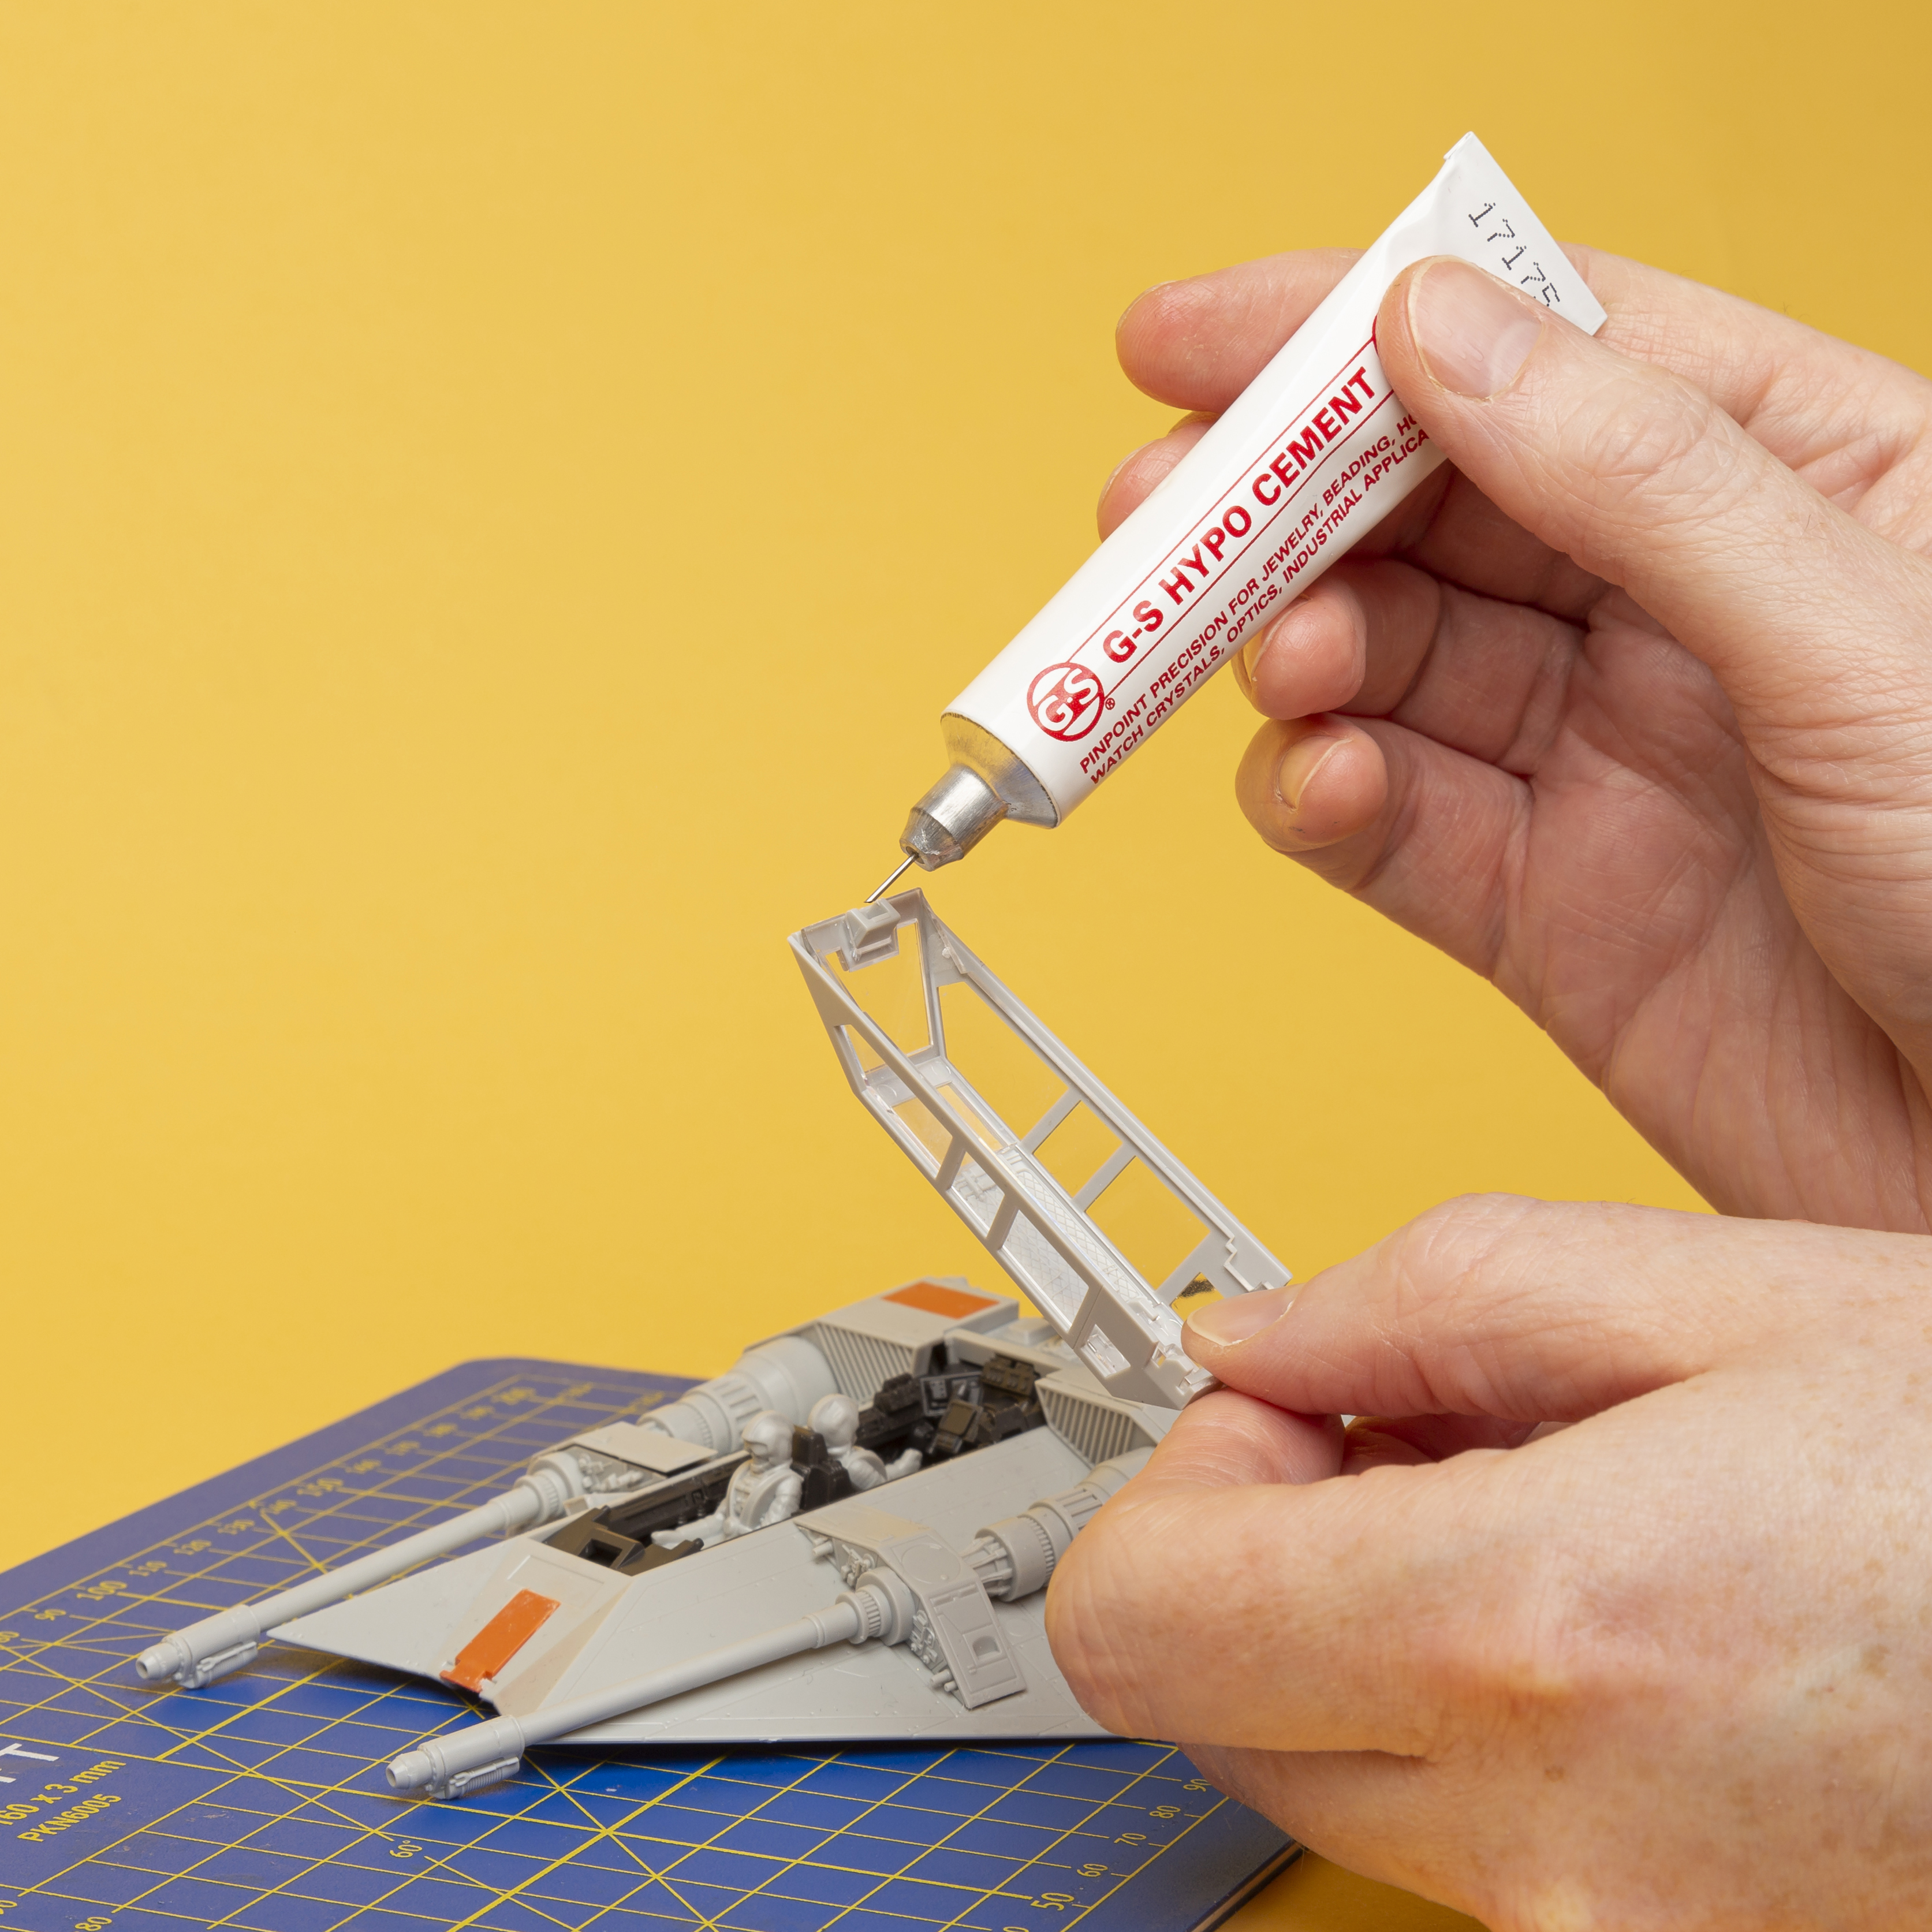 New in Stock: Modelcraft GS-Hypo Cement Clear Glue